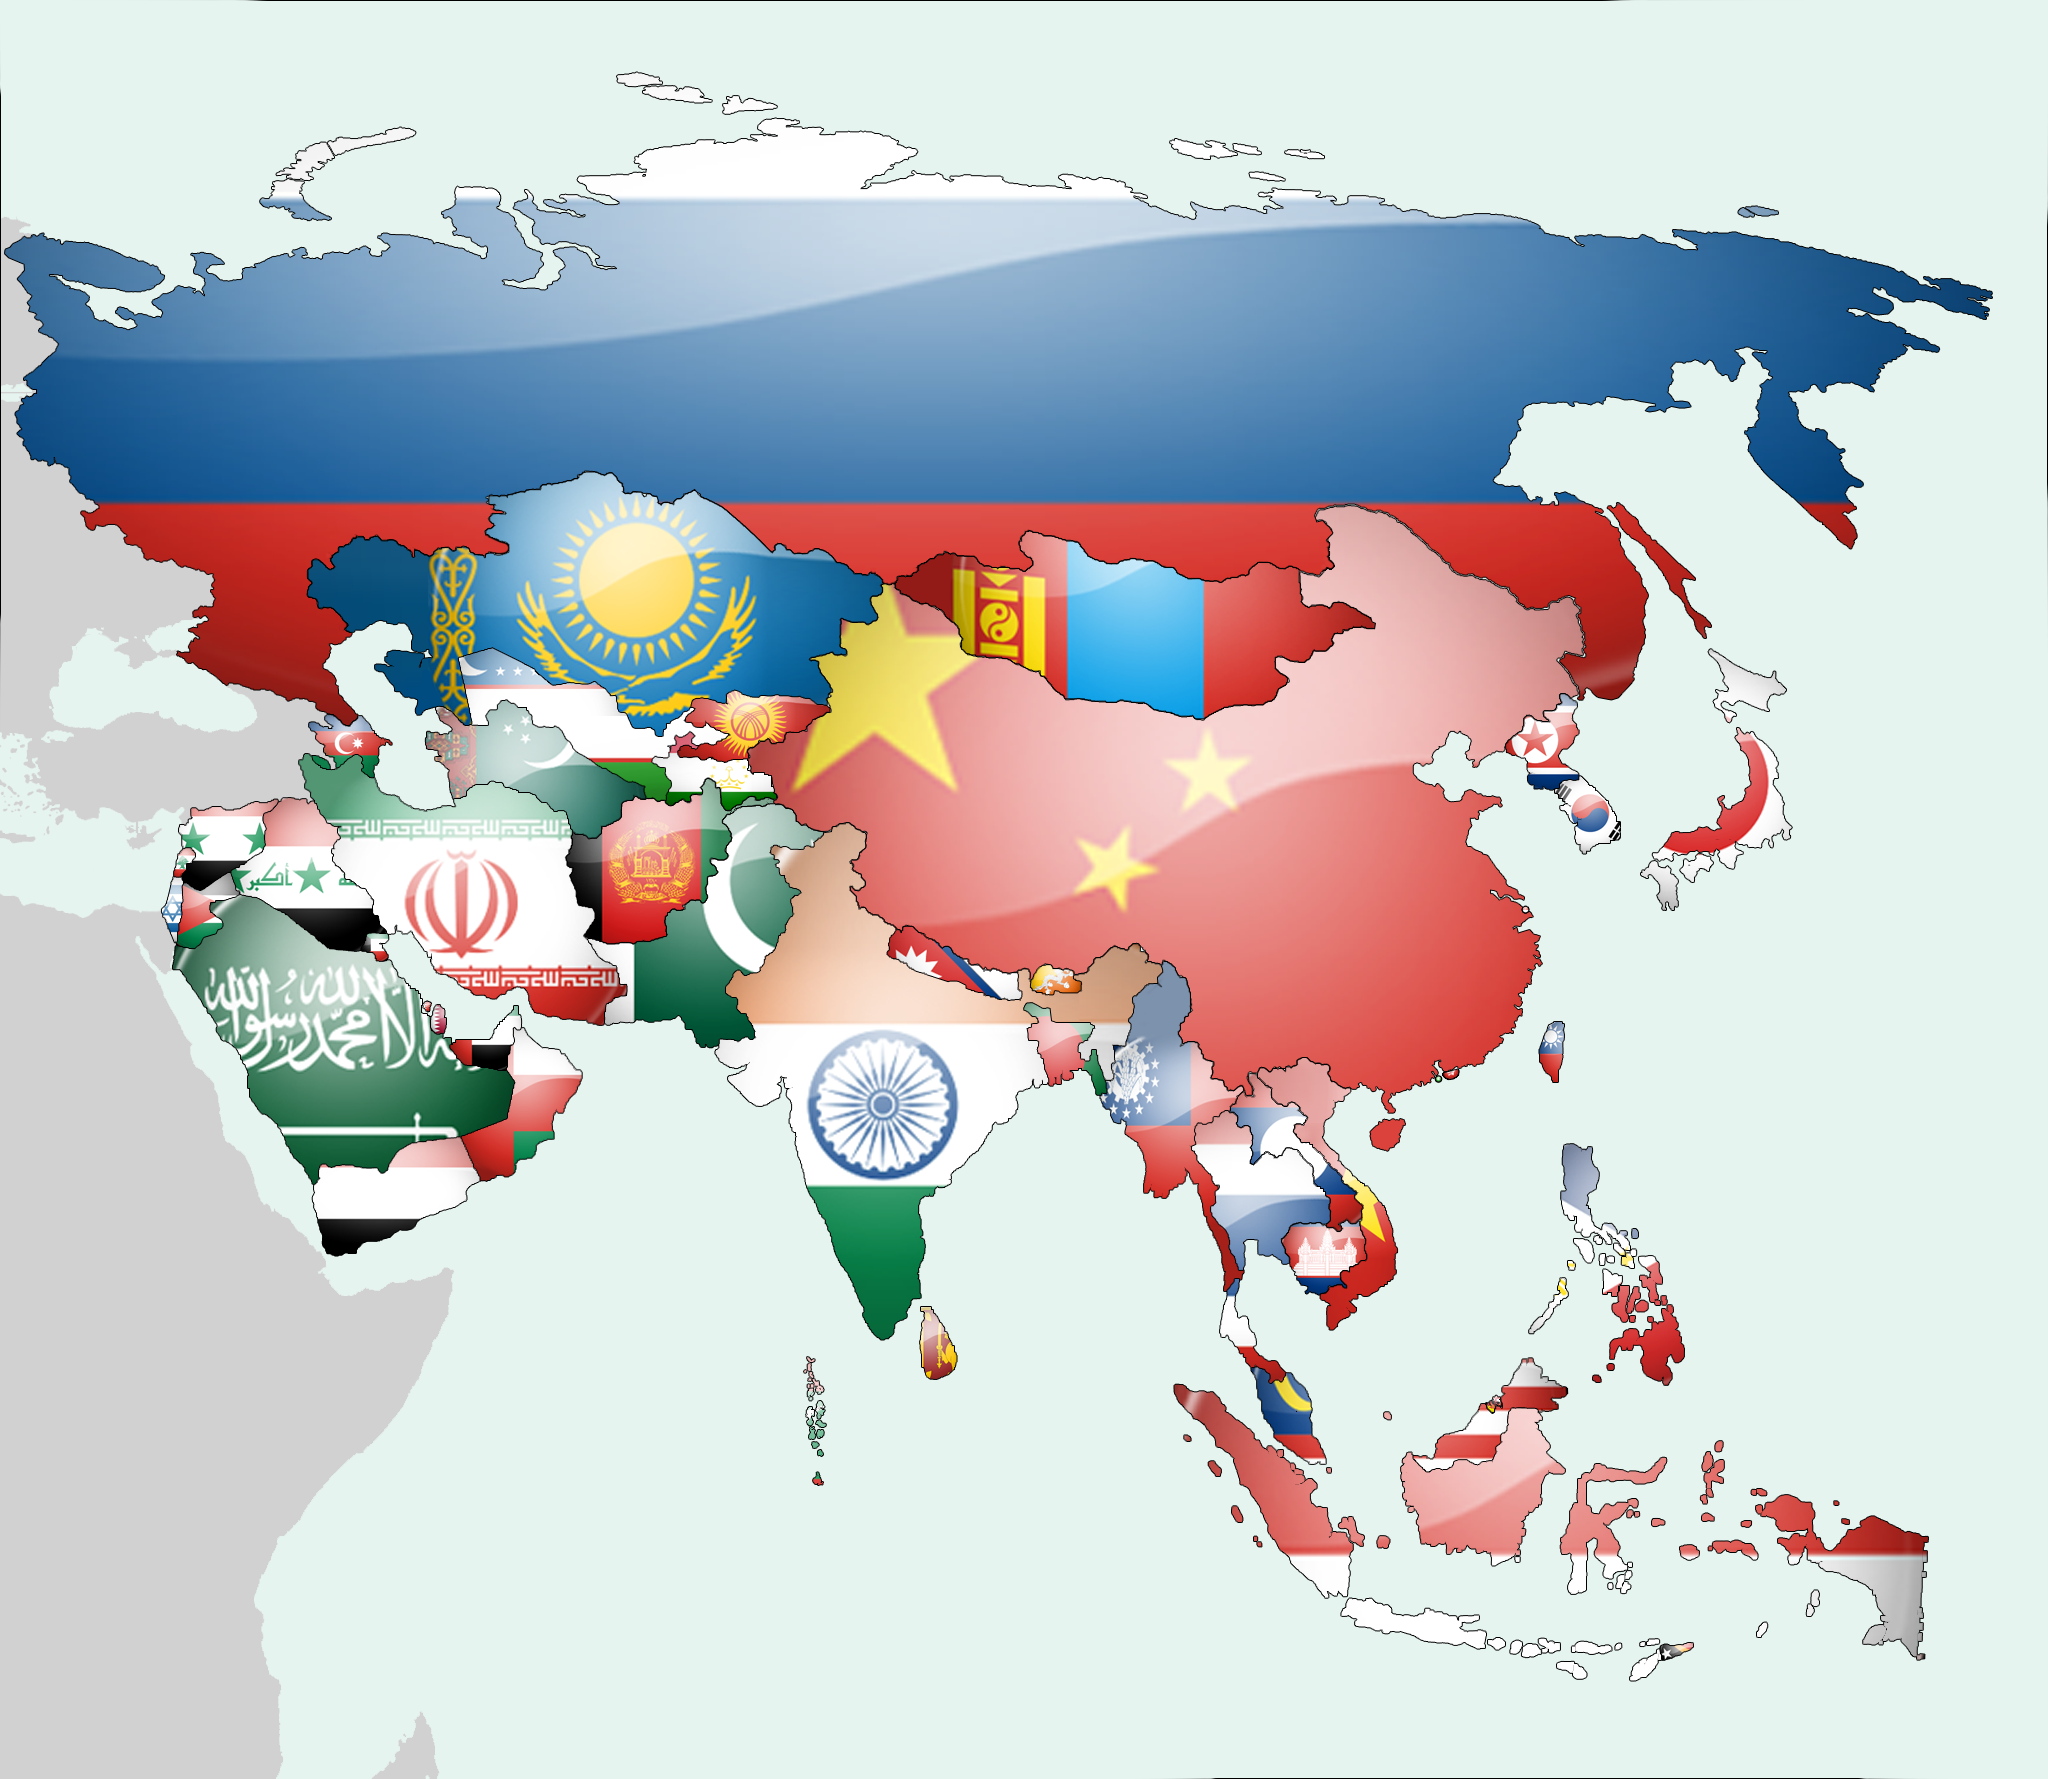 South America Flag Map By Lgstudio On DeviantArt - South america map and flags